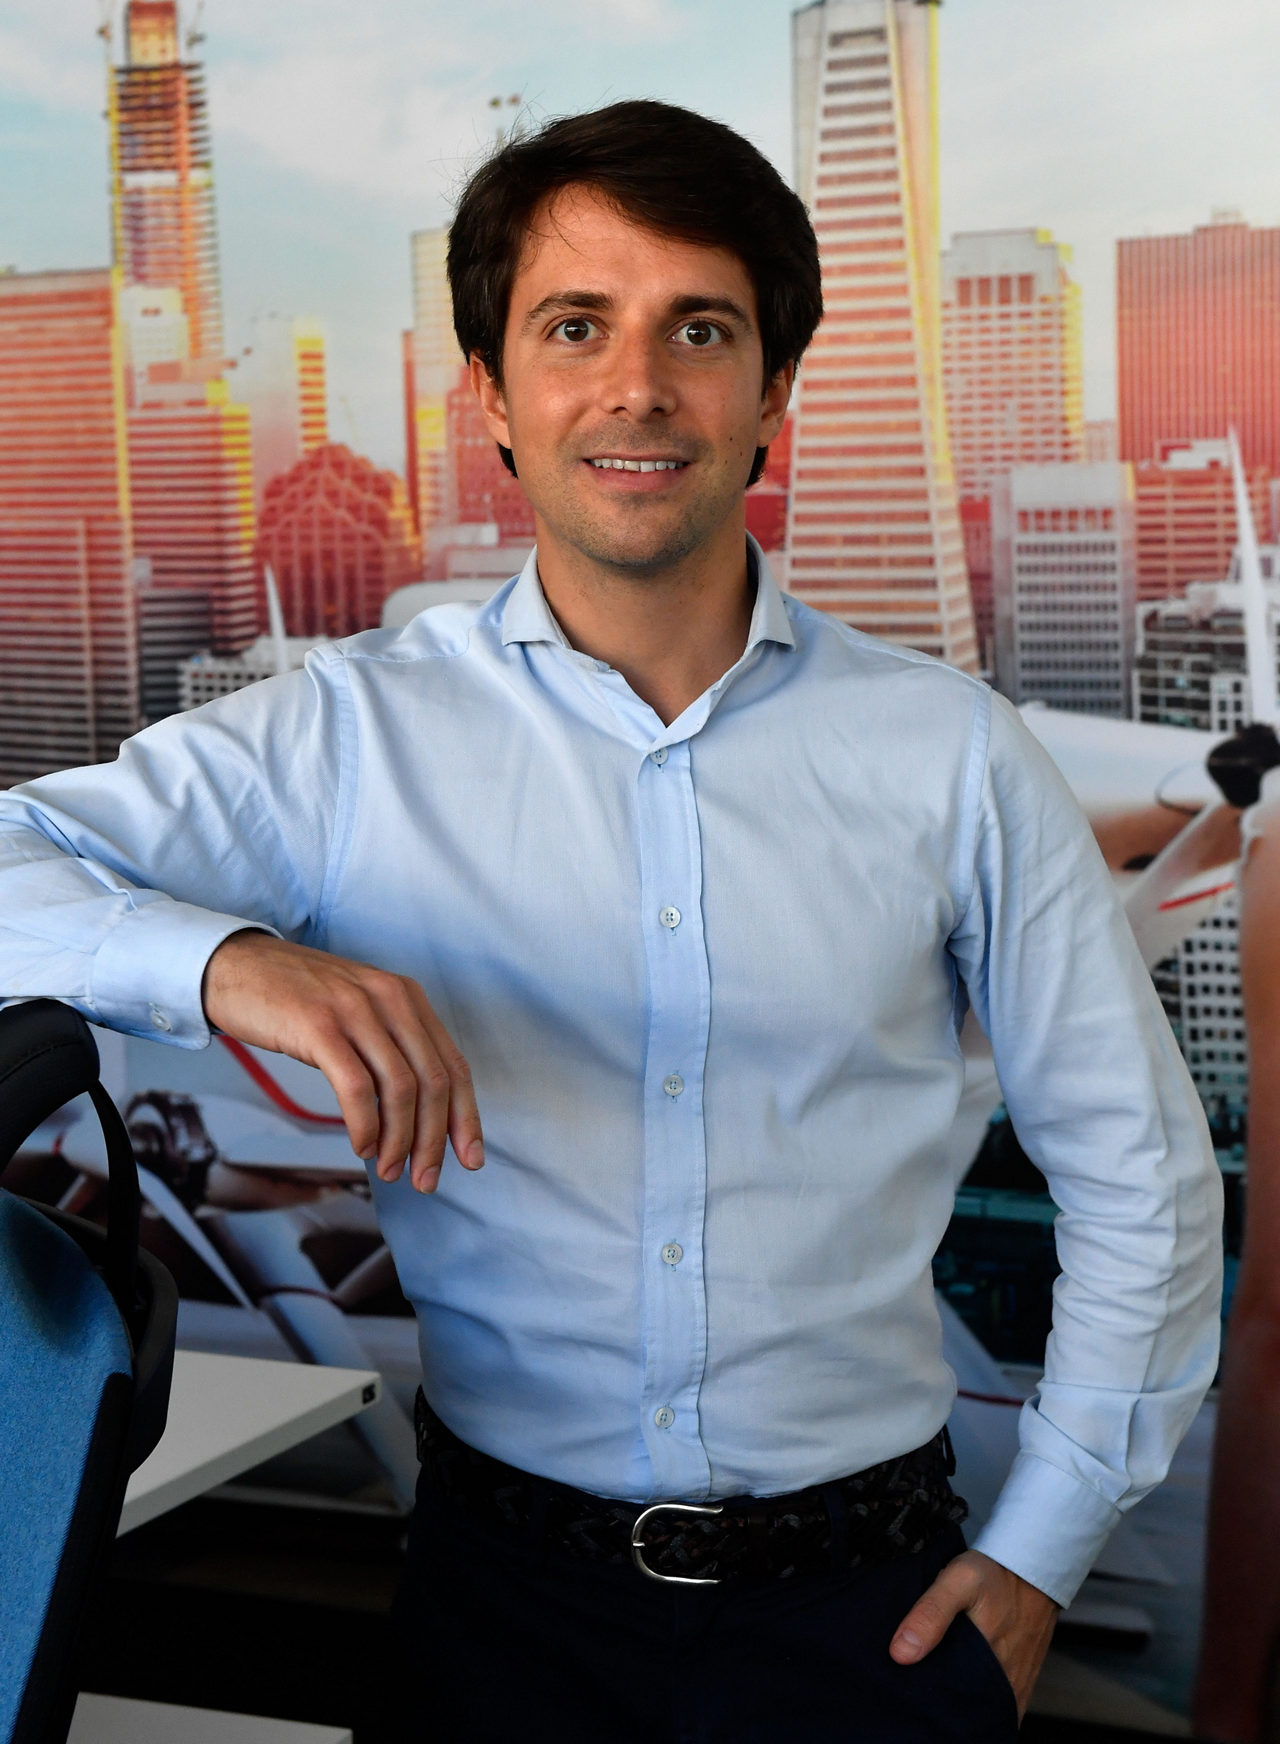 Jose Carlos Ramos Fernandez is involved with Program & Strategy at Airbus Urban Mobility GmbH